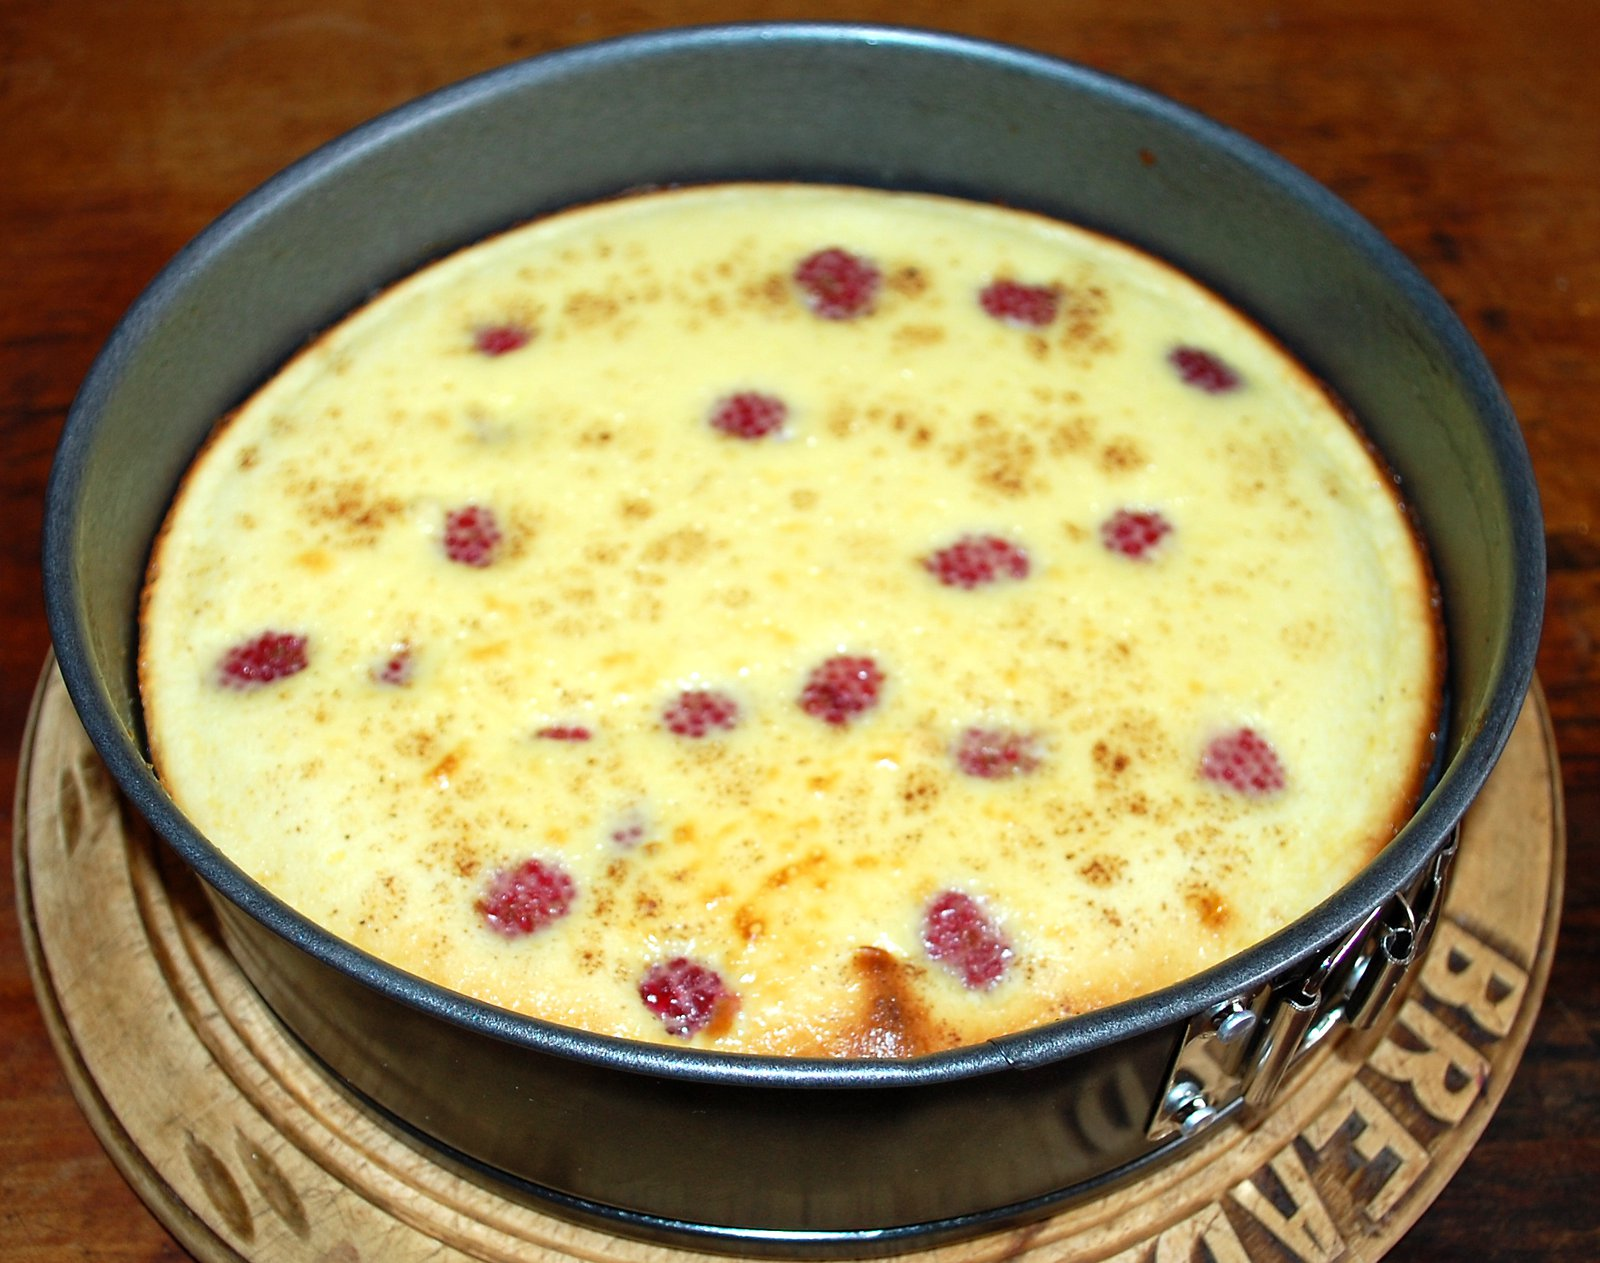 Baked cheesecake just out of oven